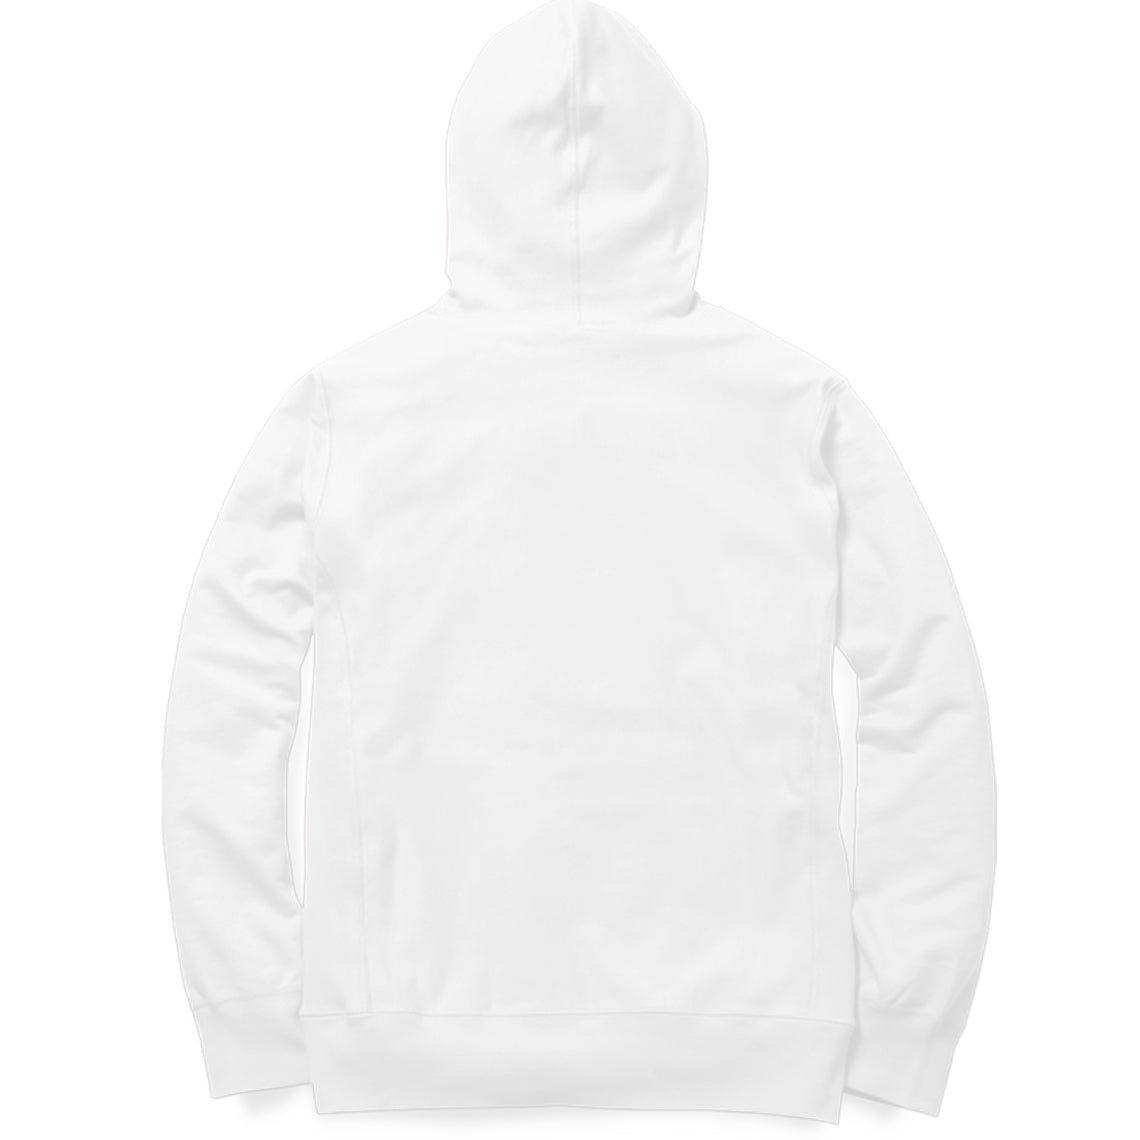 Baromin Hoodies - White